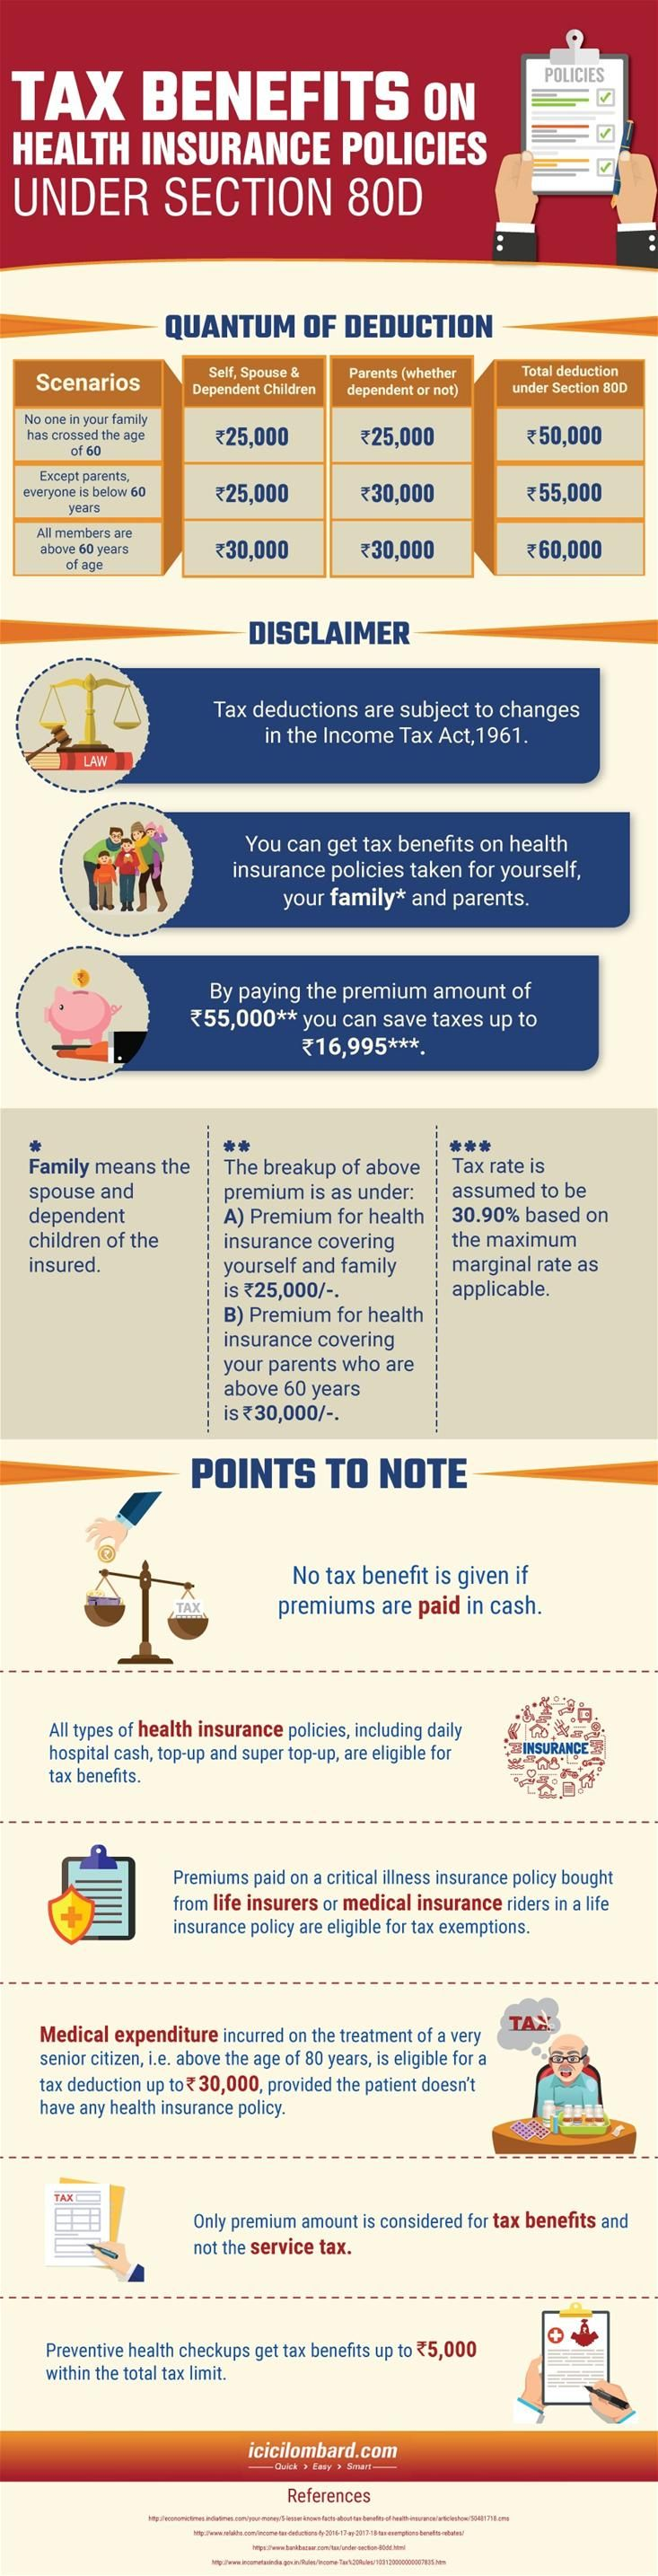 Tax Benefits Under Section 80d Health Insurance Policies Health